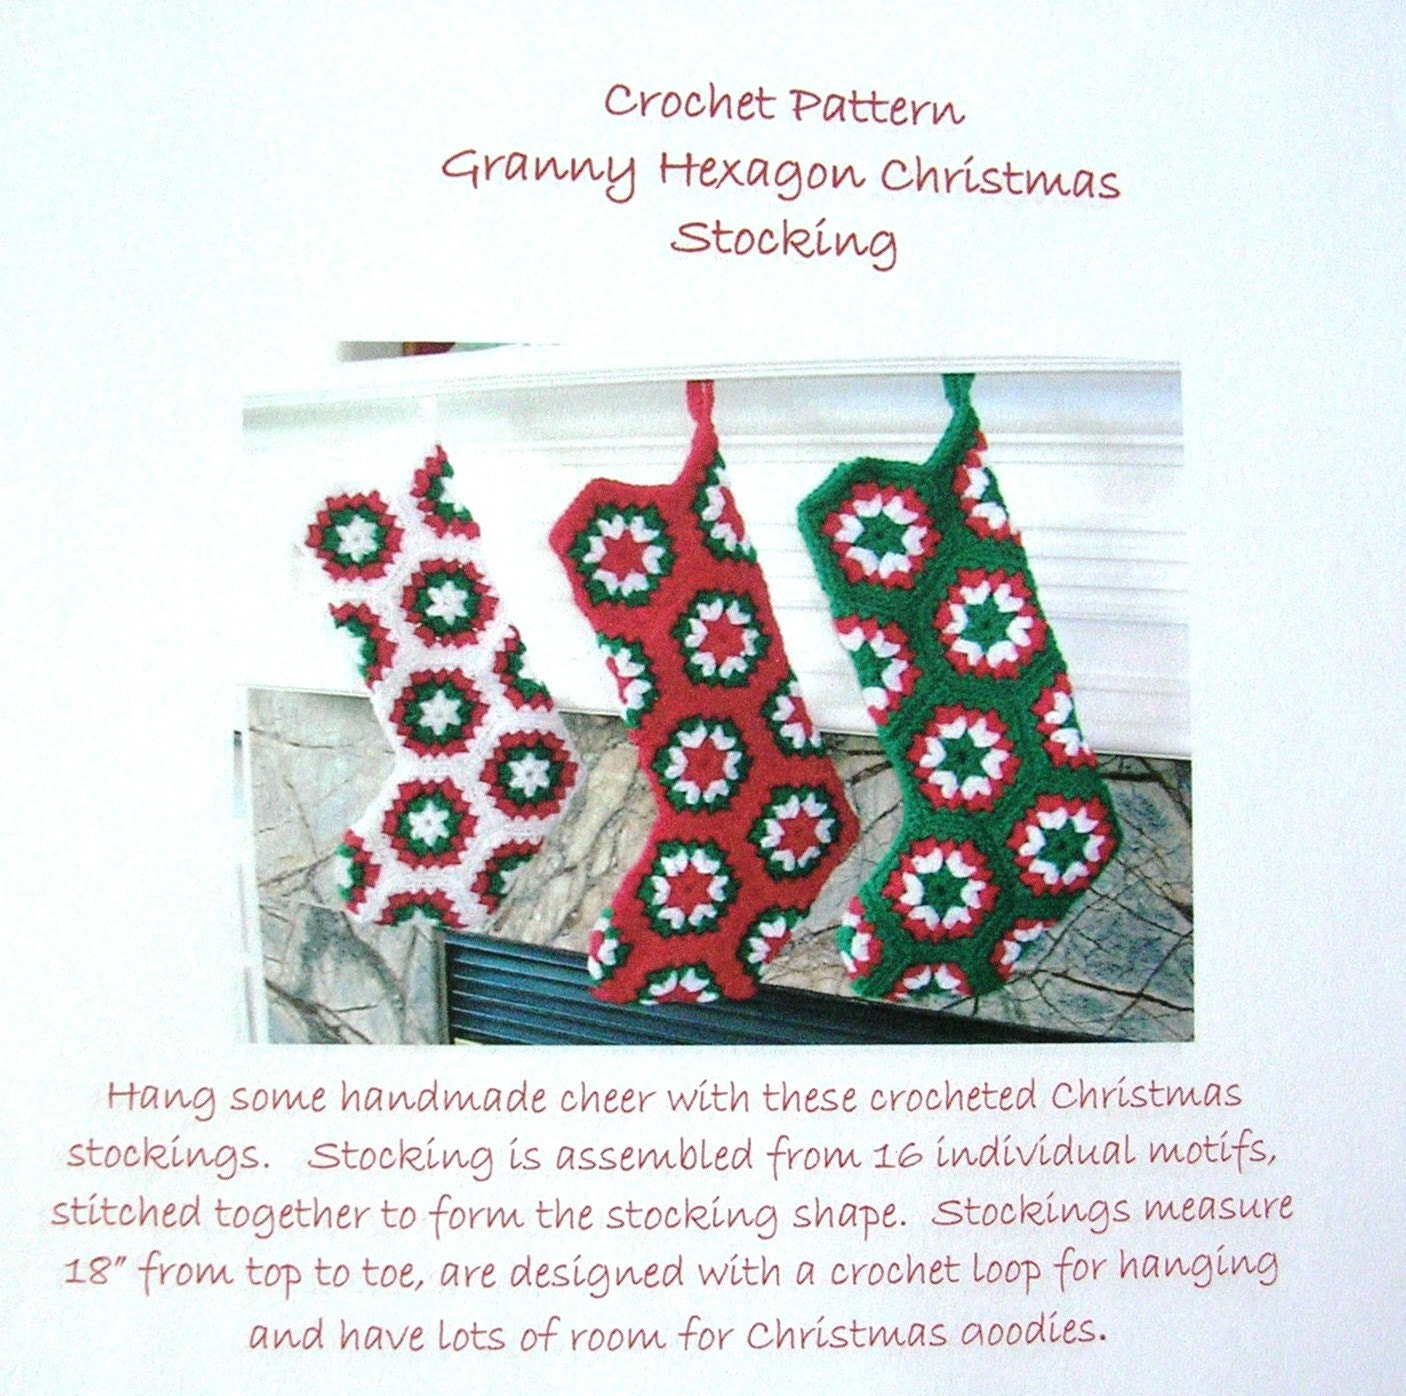 Crochet Pattern Granny Hexagon Christmas by CottageImaginations